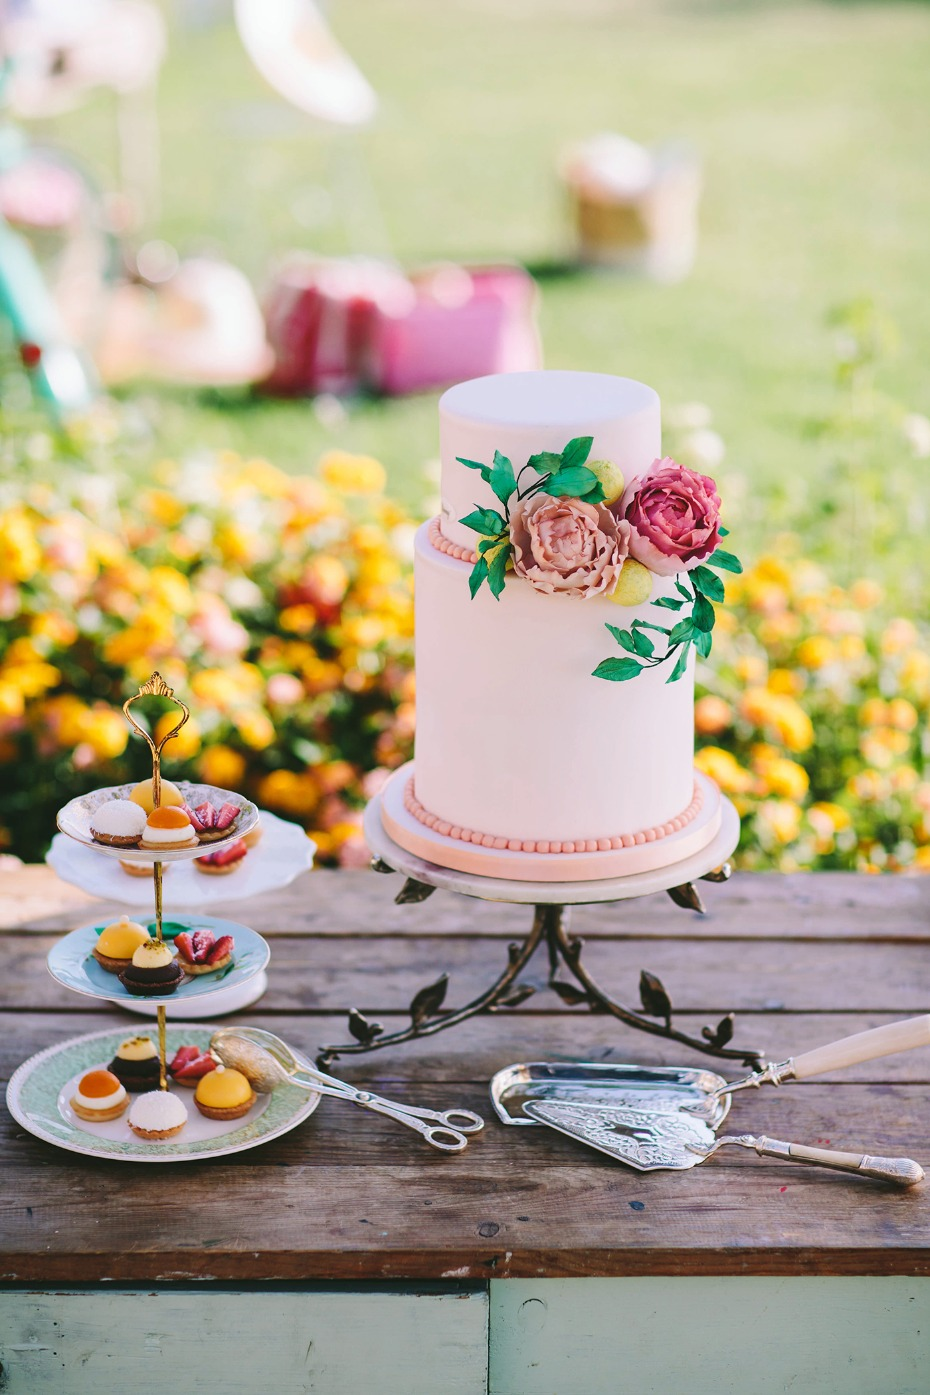 Floral accented wedding cake with tasty pastries